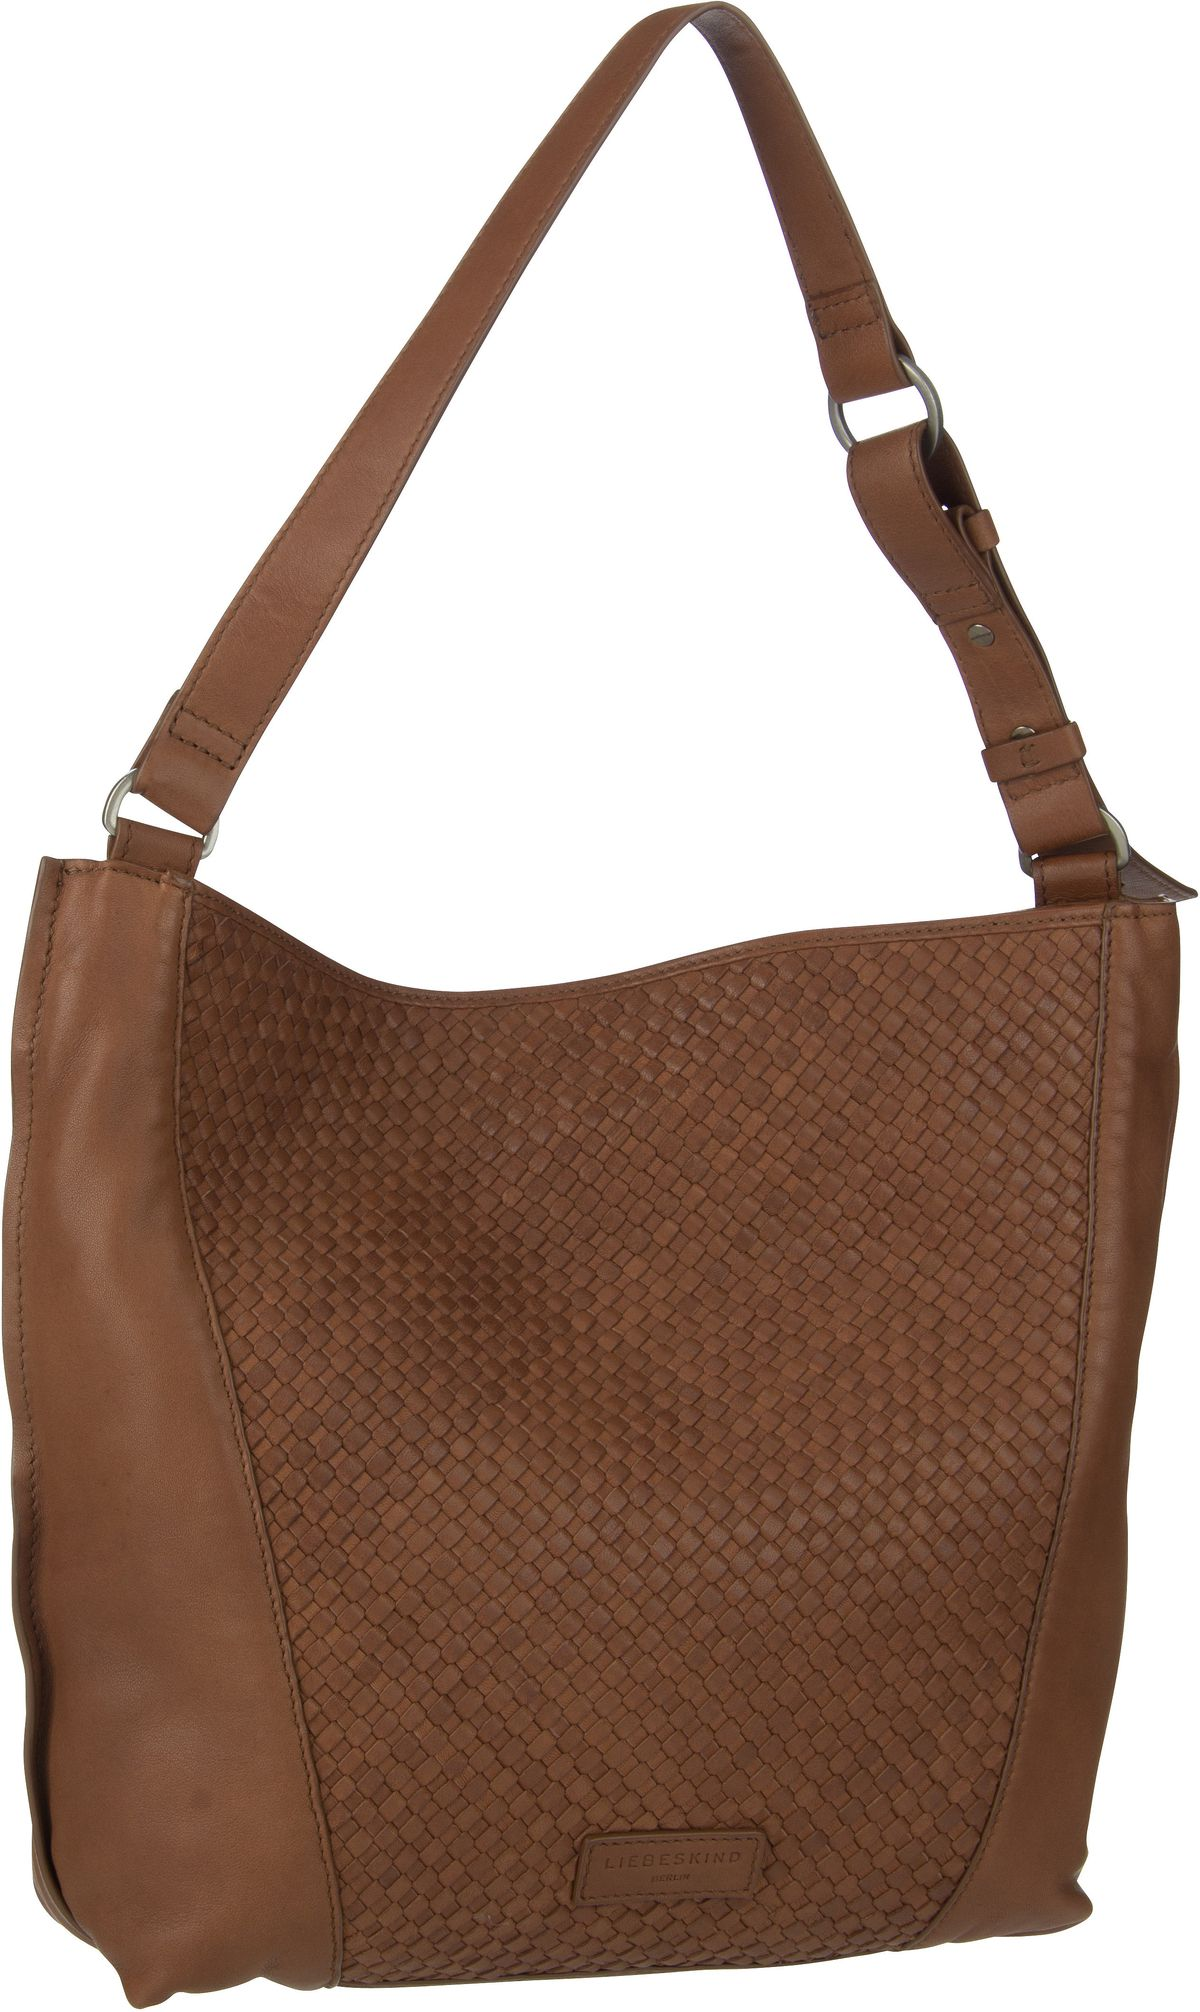 liebeskind berlin -  Handtasche Santa Fe Hobo M Medium Brown